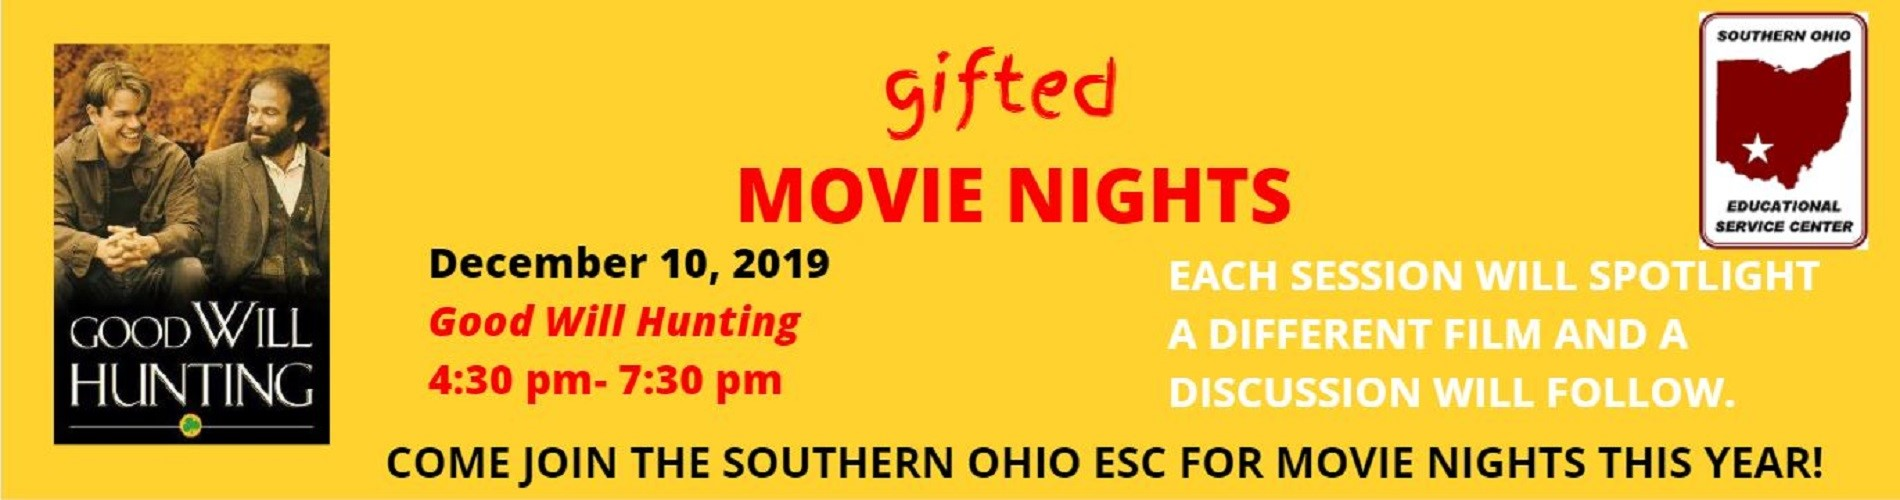 December 10, 2019 Gifted Movie Nights Flyer